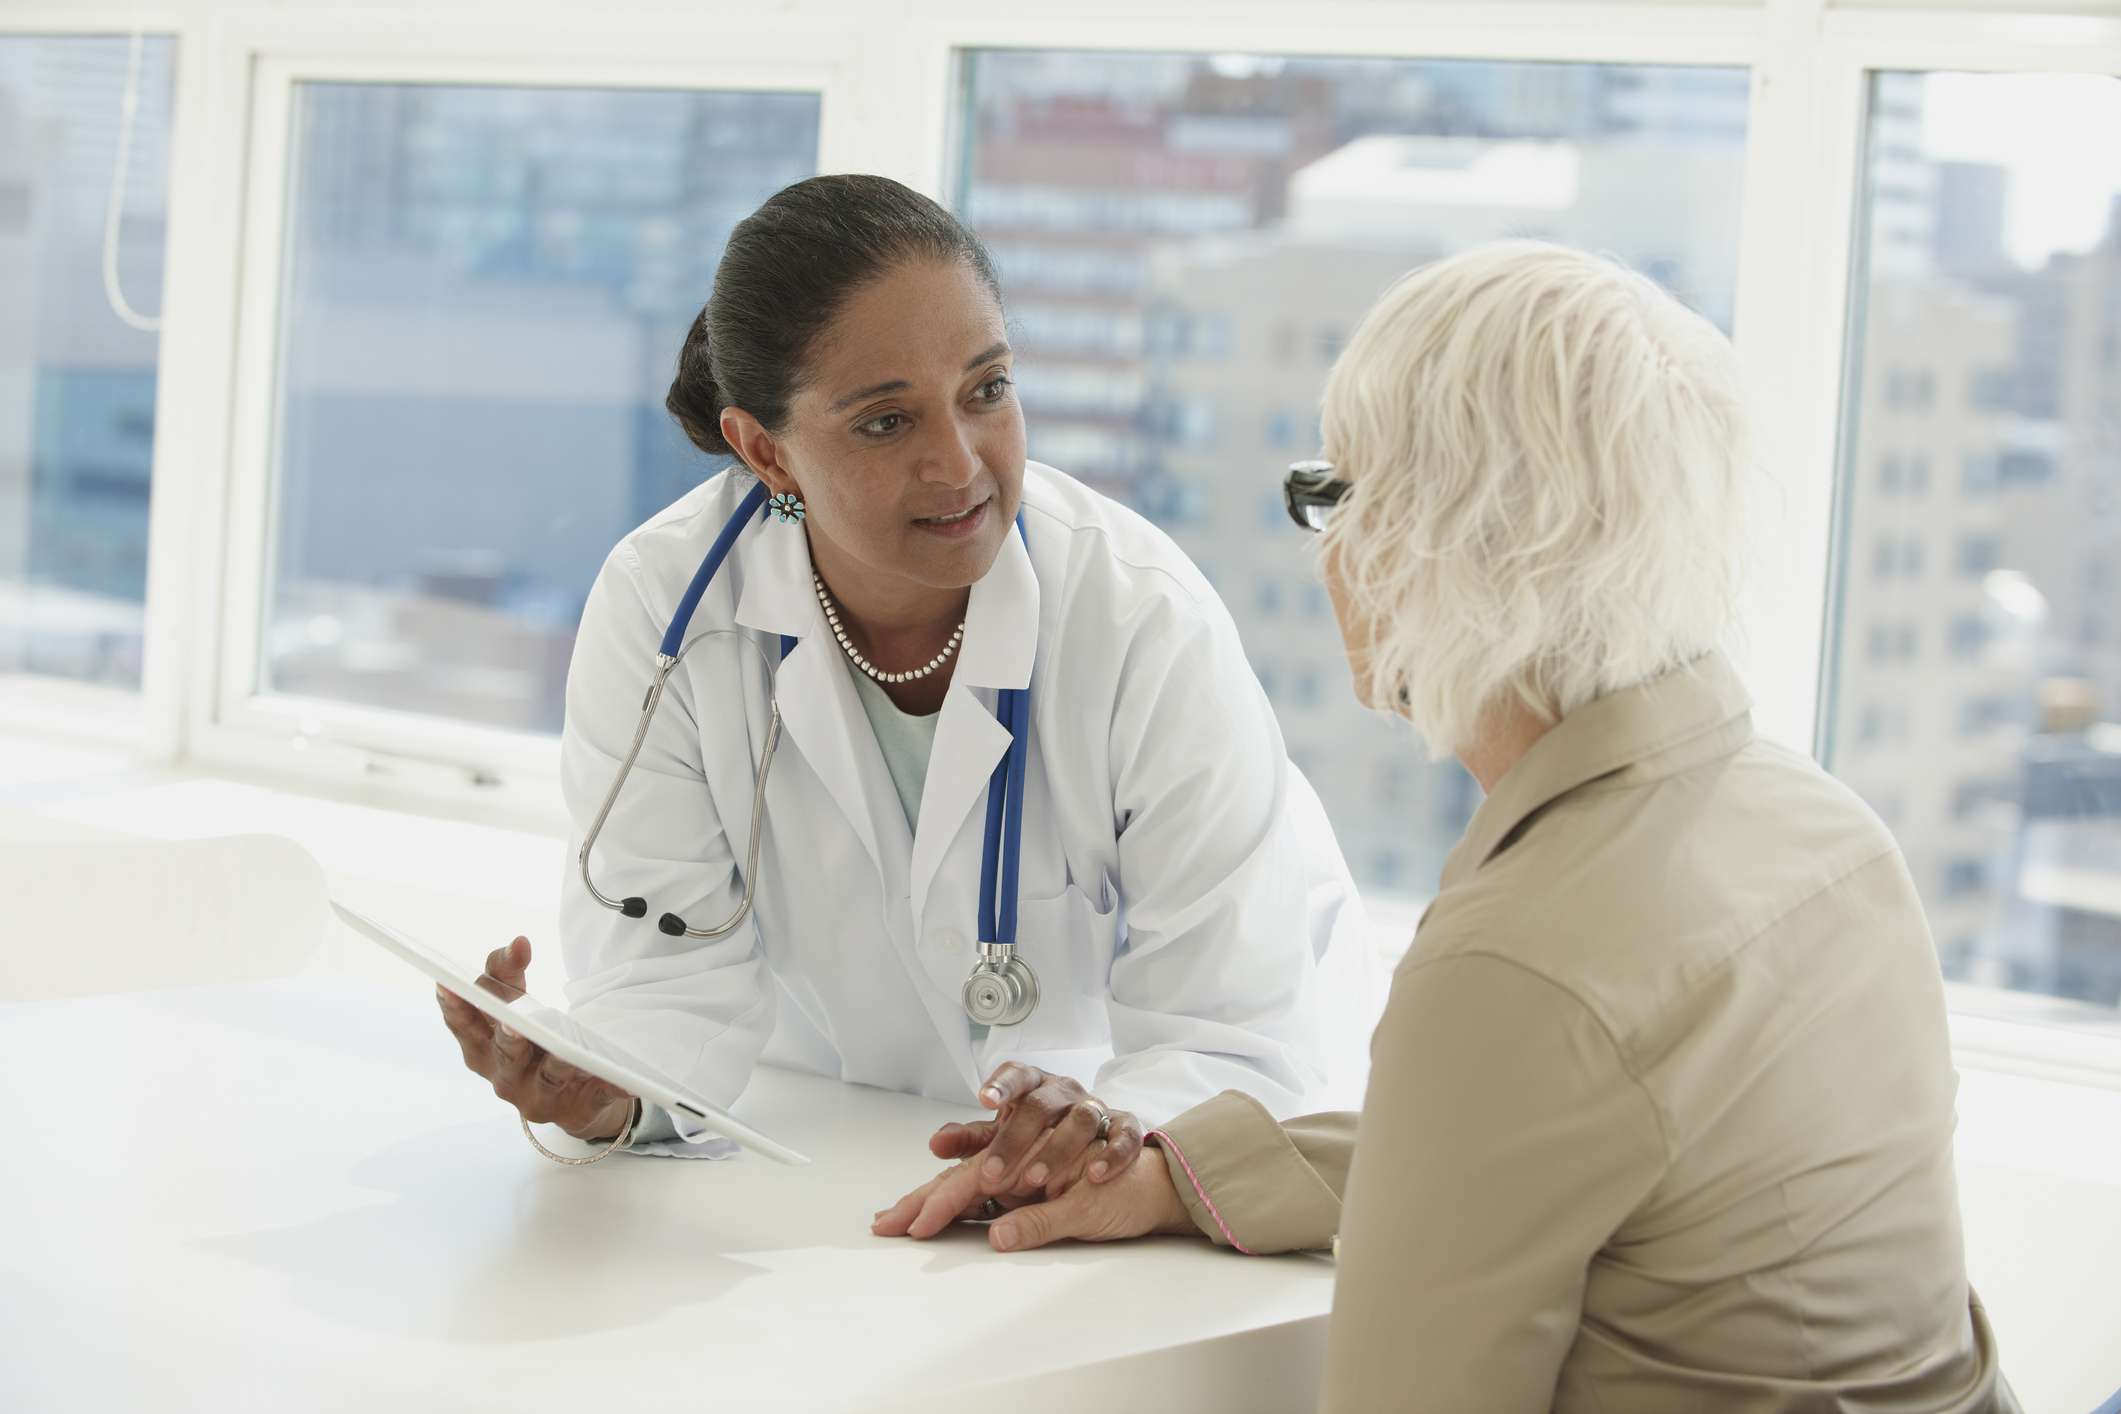 Doctor performs neurological and cognitive exam with senior patient